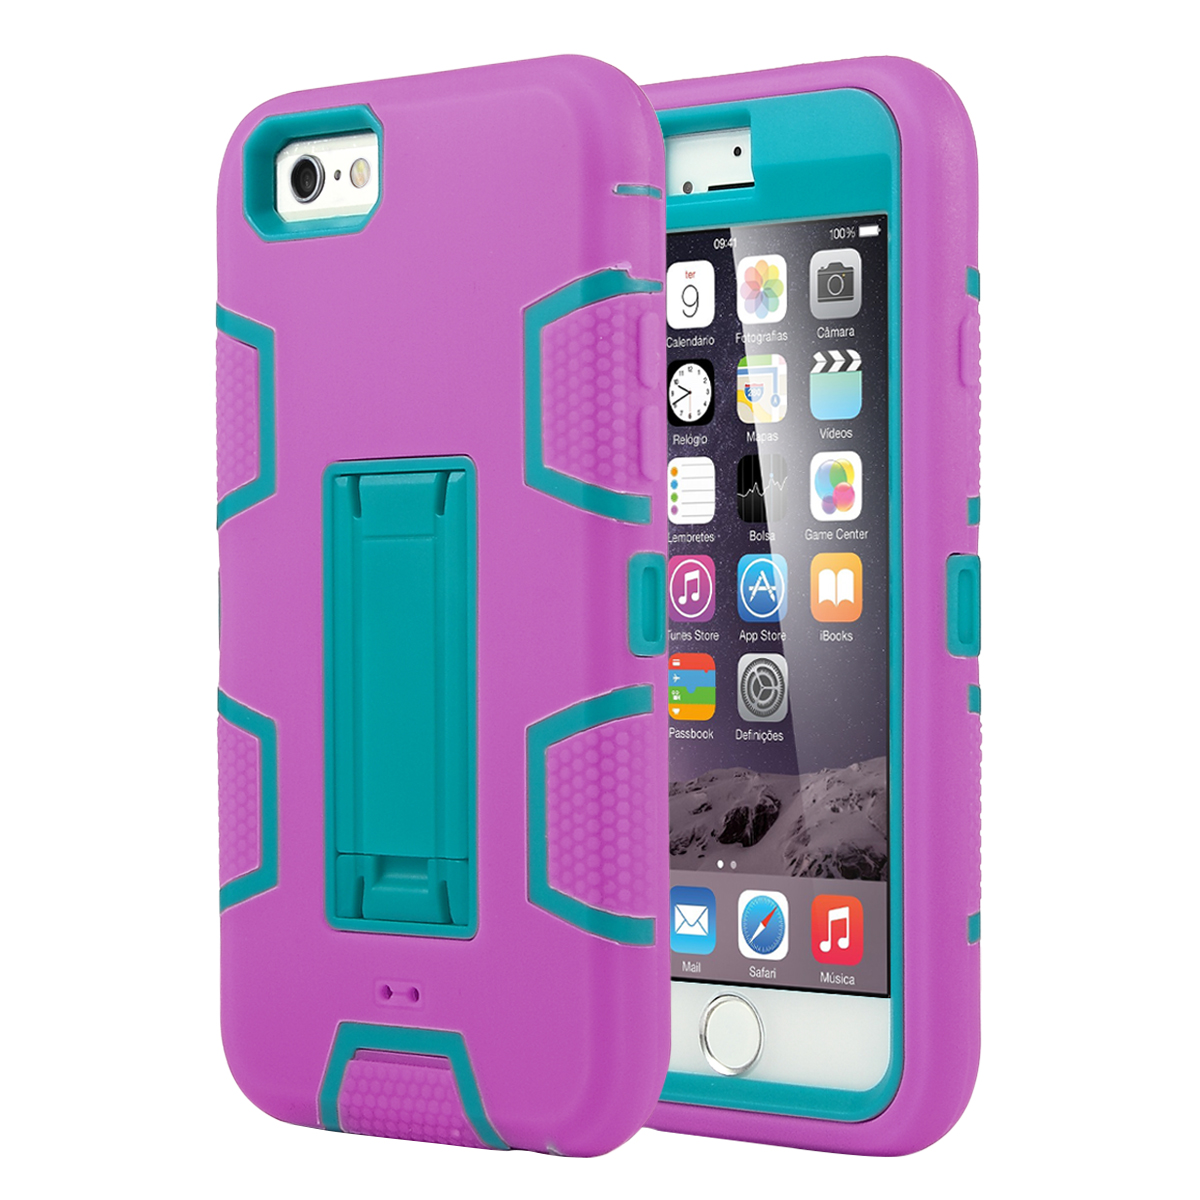 iPhone 6 Case, iPhone 6s Case, ULAK Robot Guard Shock Absorbing Case Hybrid 3in1 PC and Silicone Cover with Built-in Stand for Apple iPhone 6 & 6S 4.7 inch